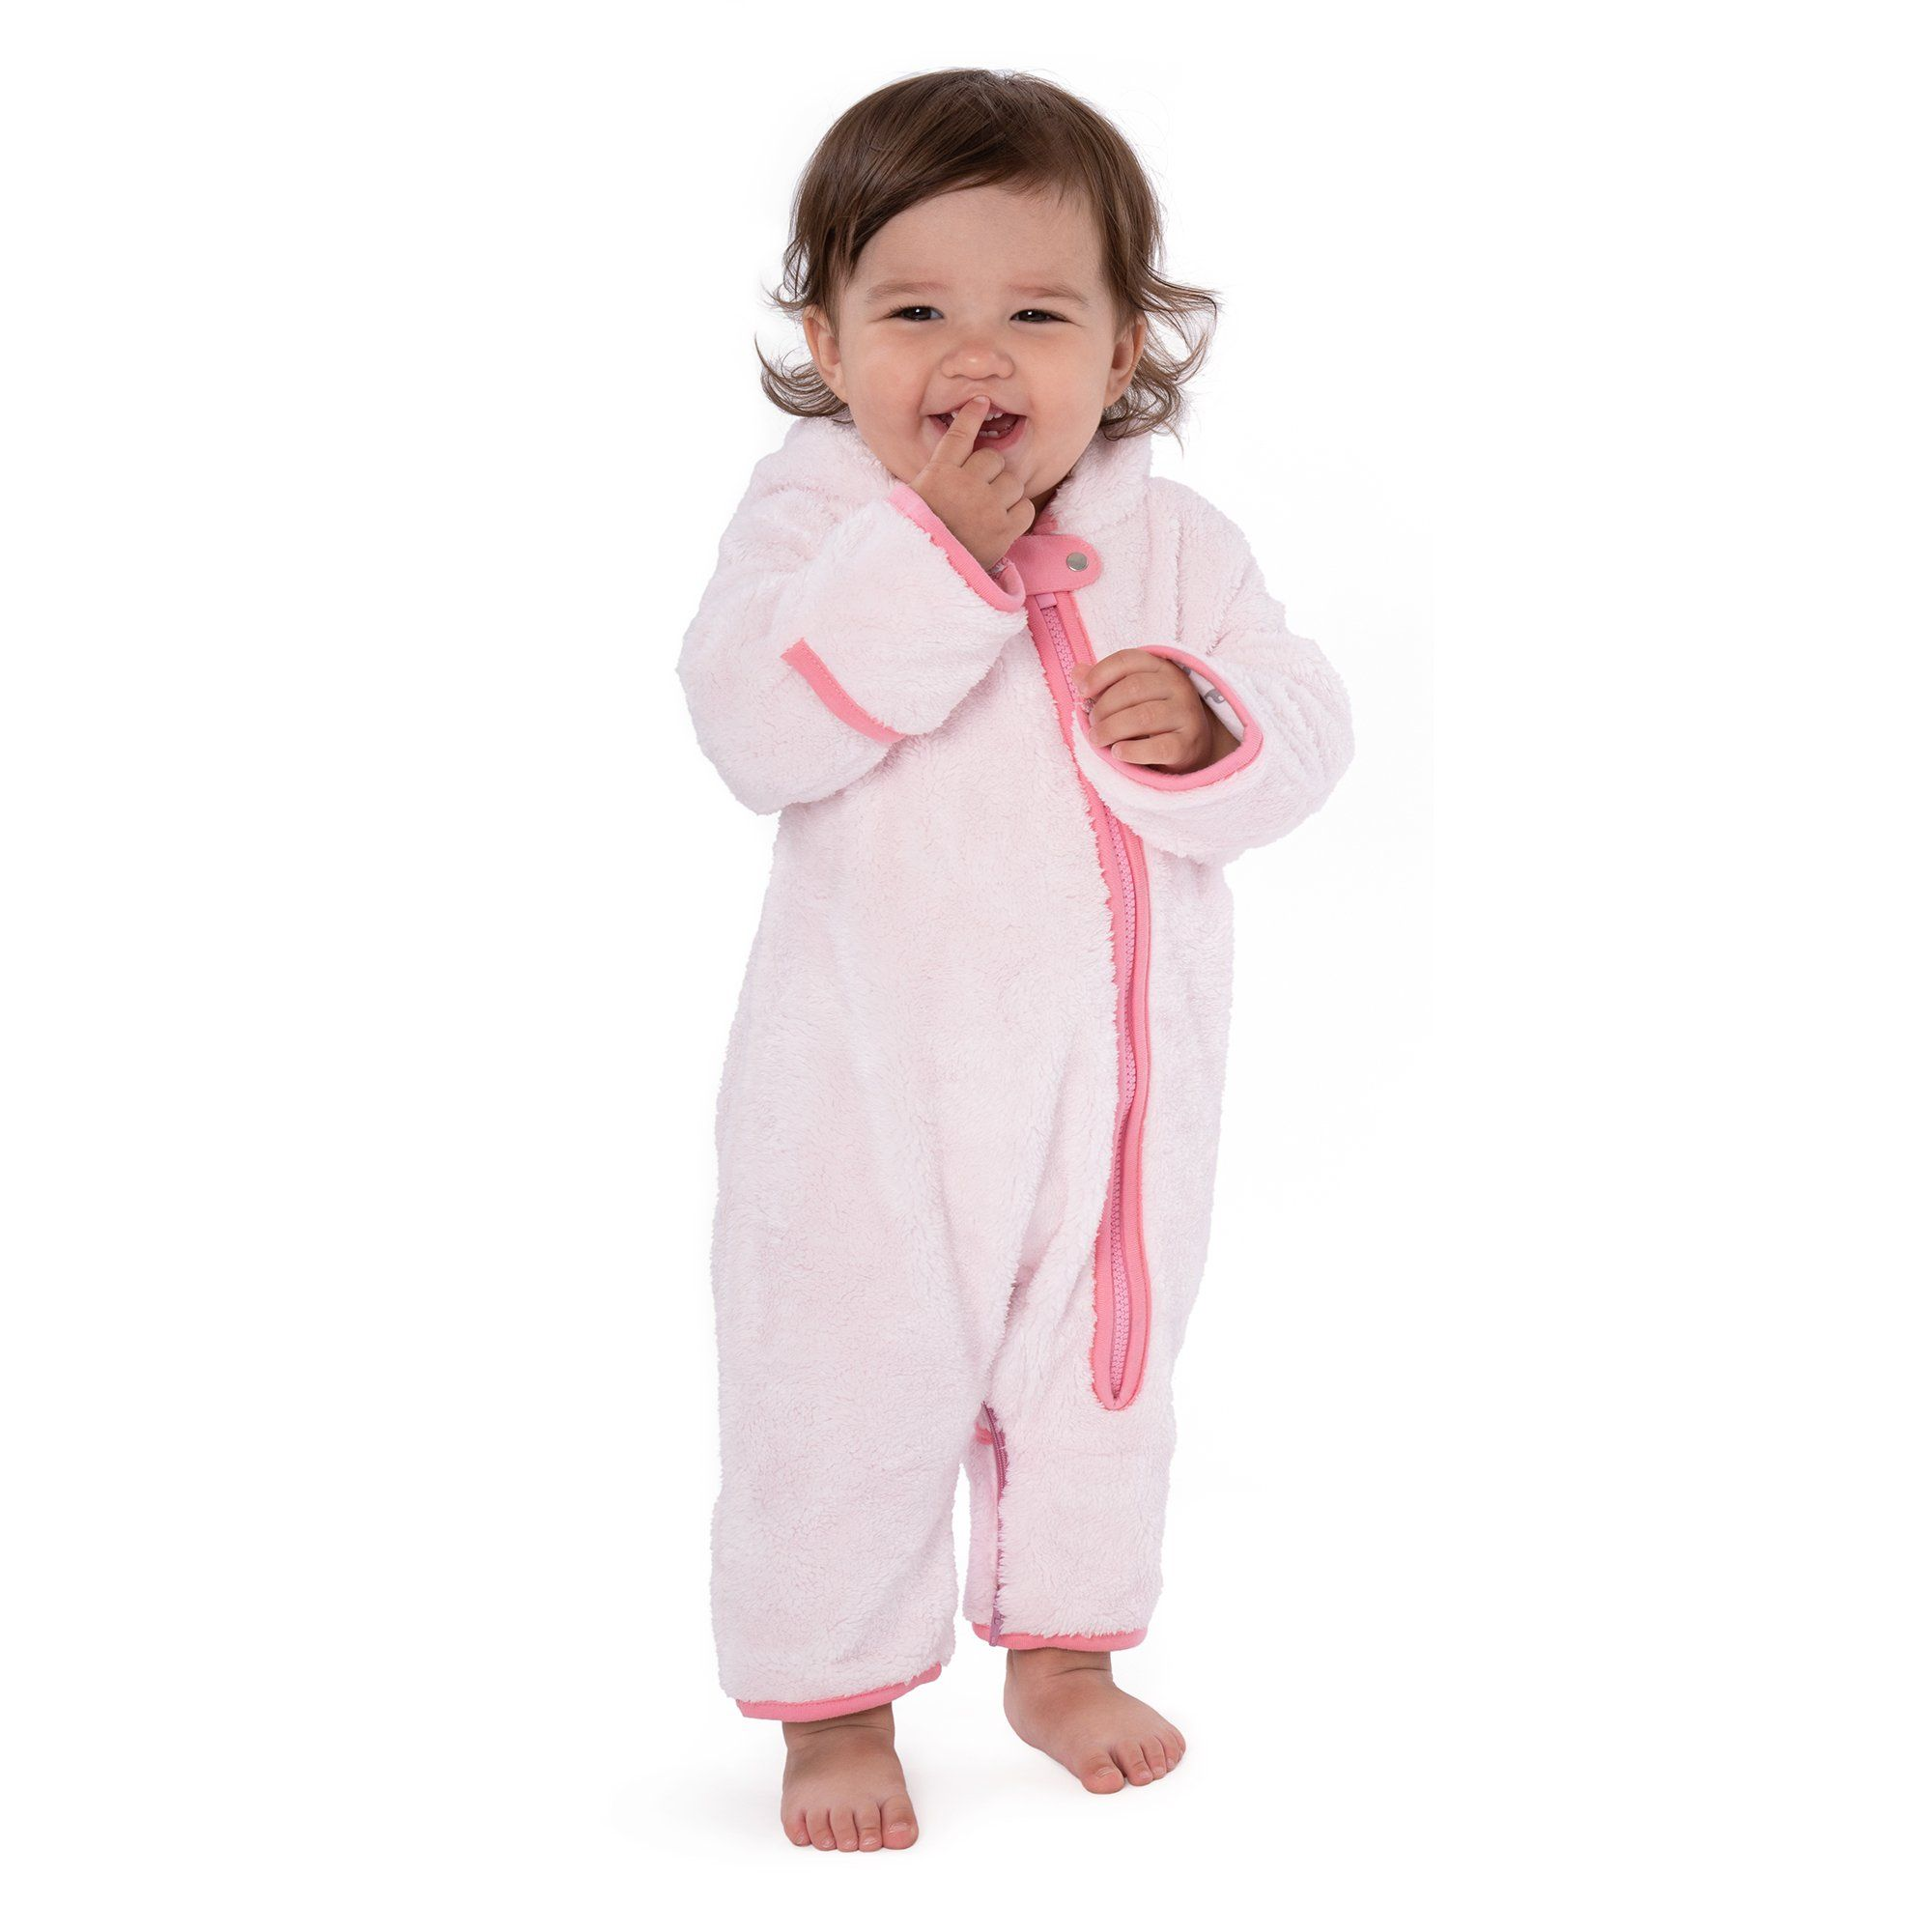 Furry bear buntings - 3-6 Months / Pink